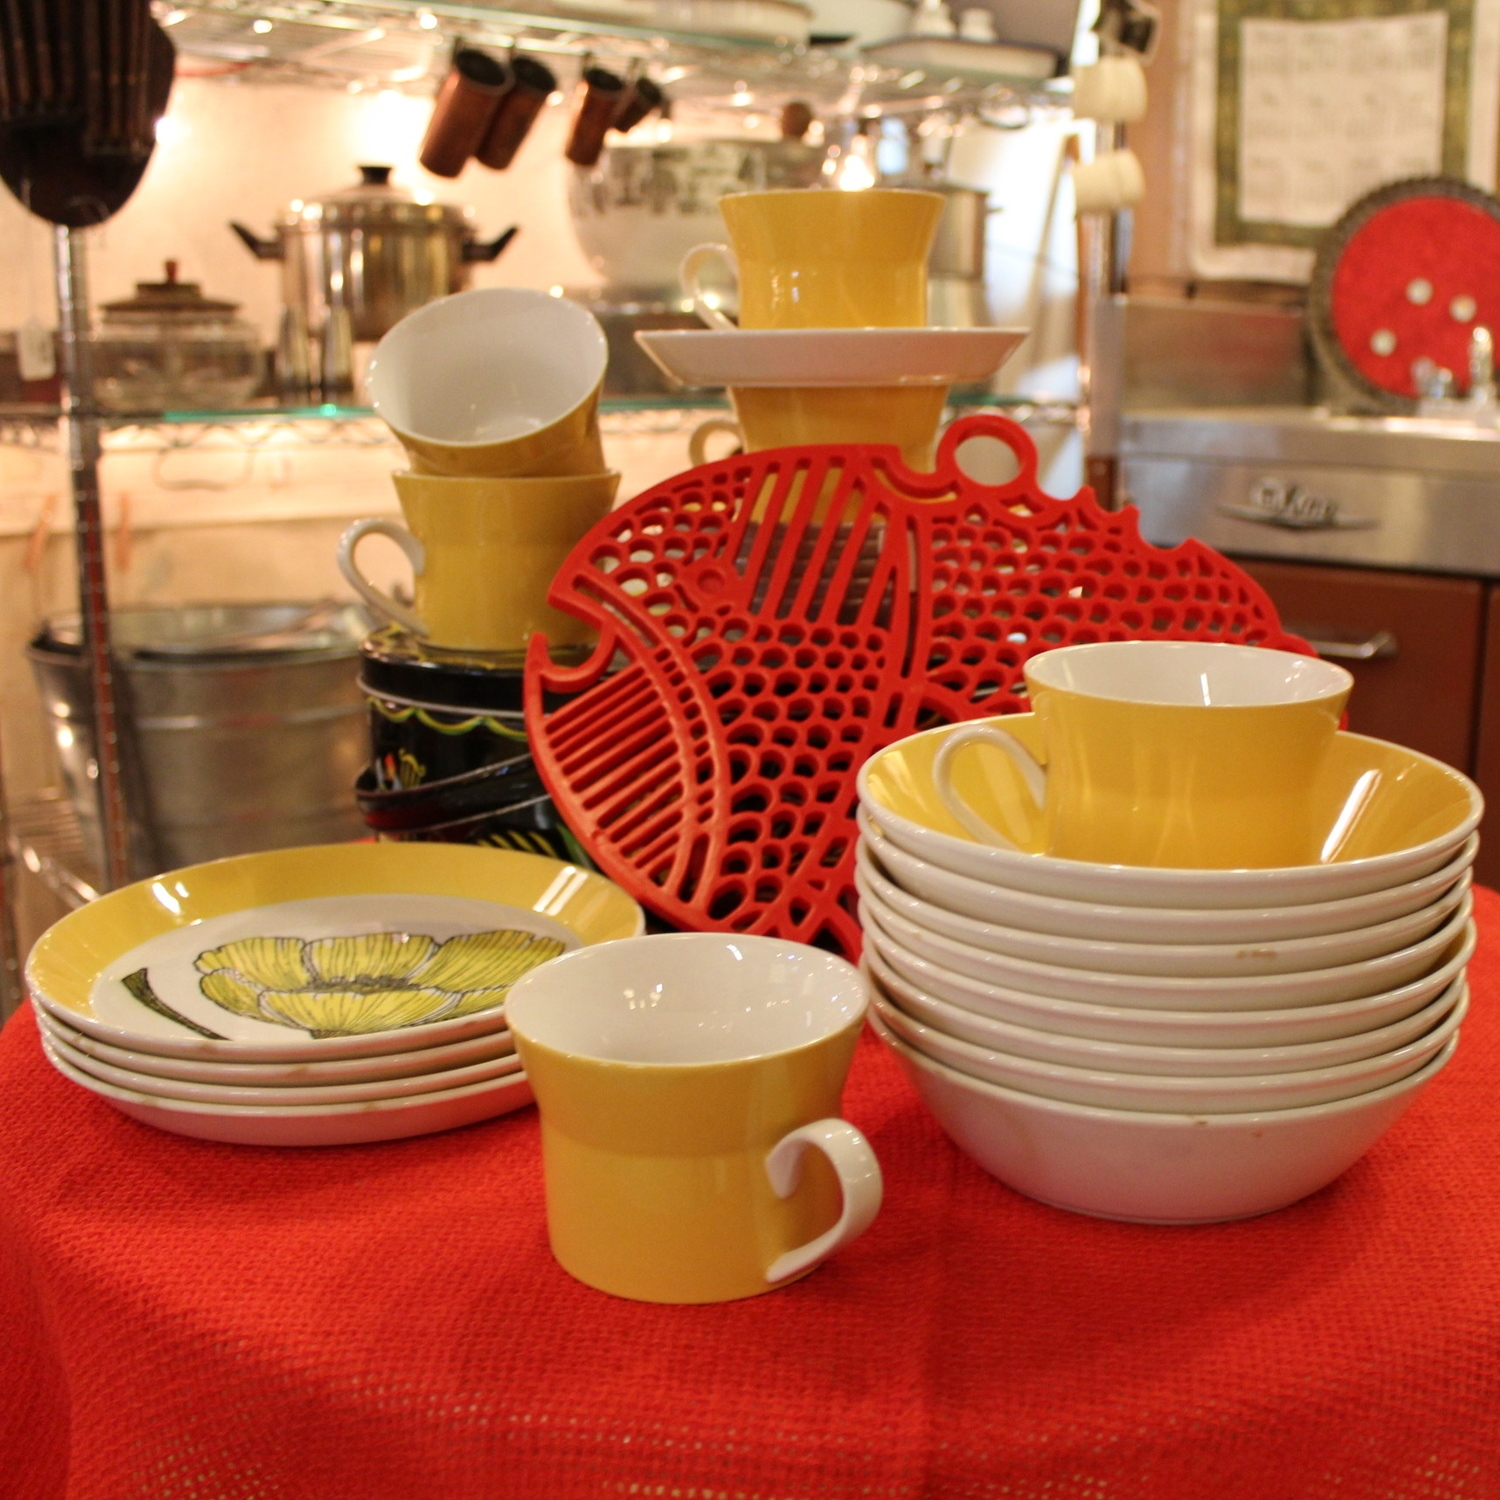 Yellow and Red Dishware Display